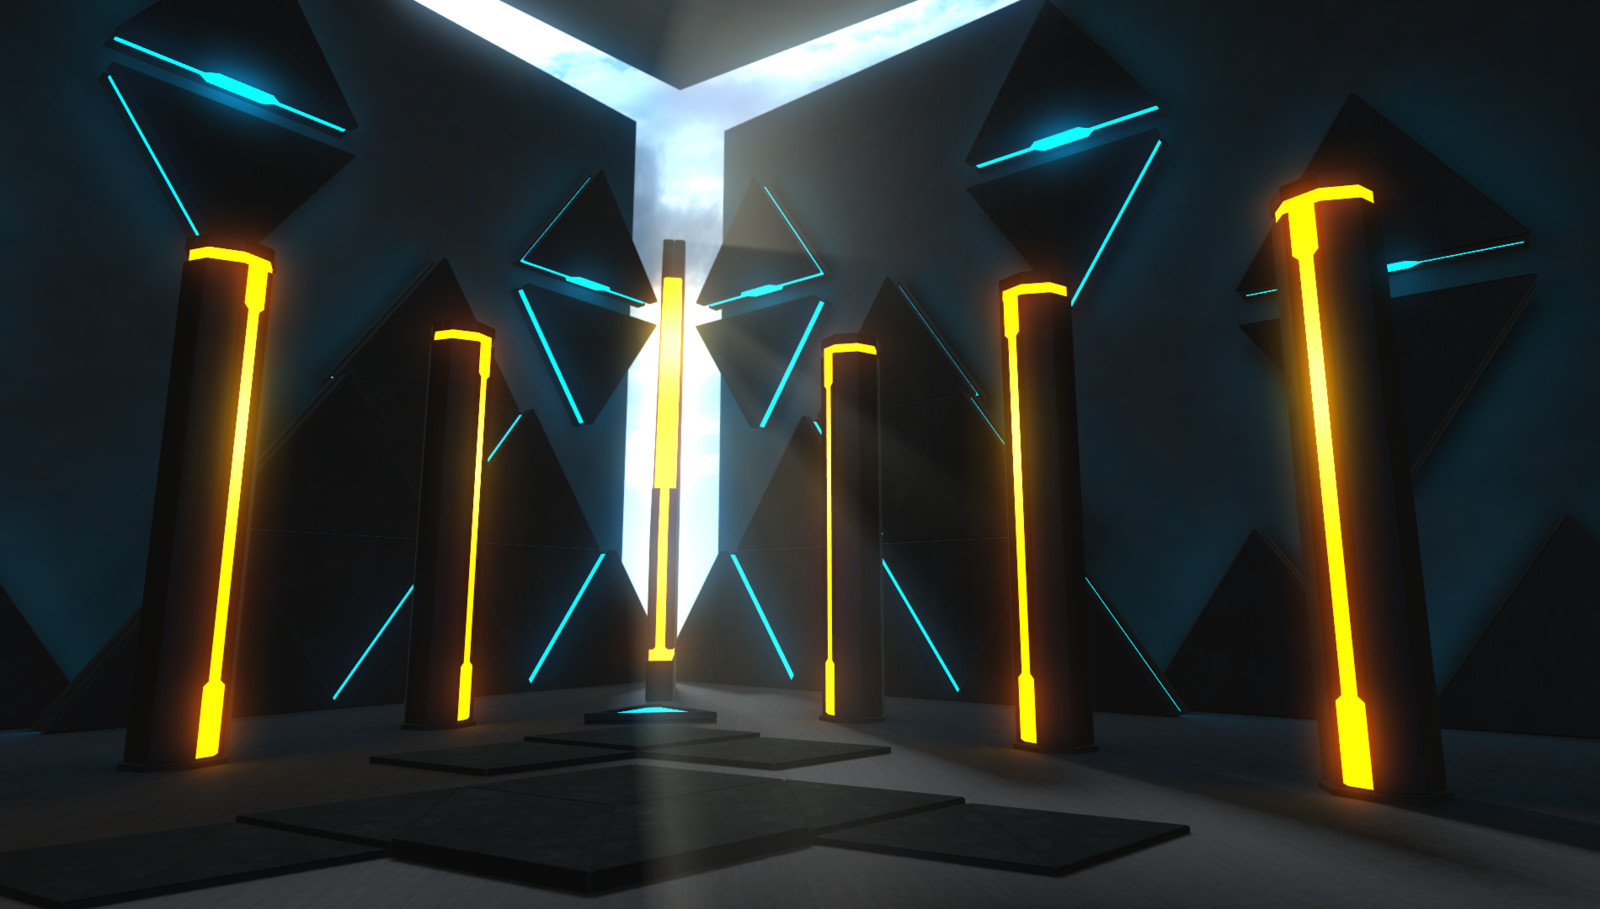 A few demo scenes that I made in Unity